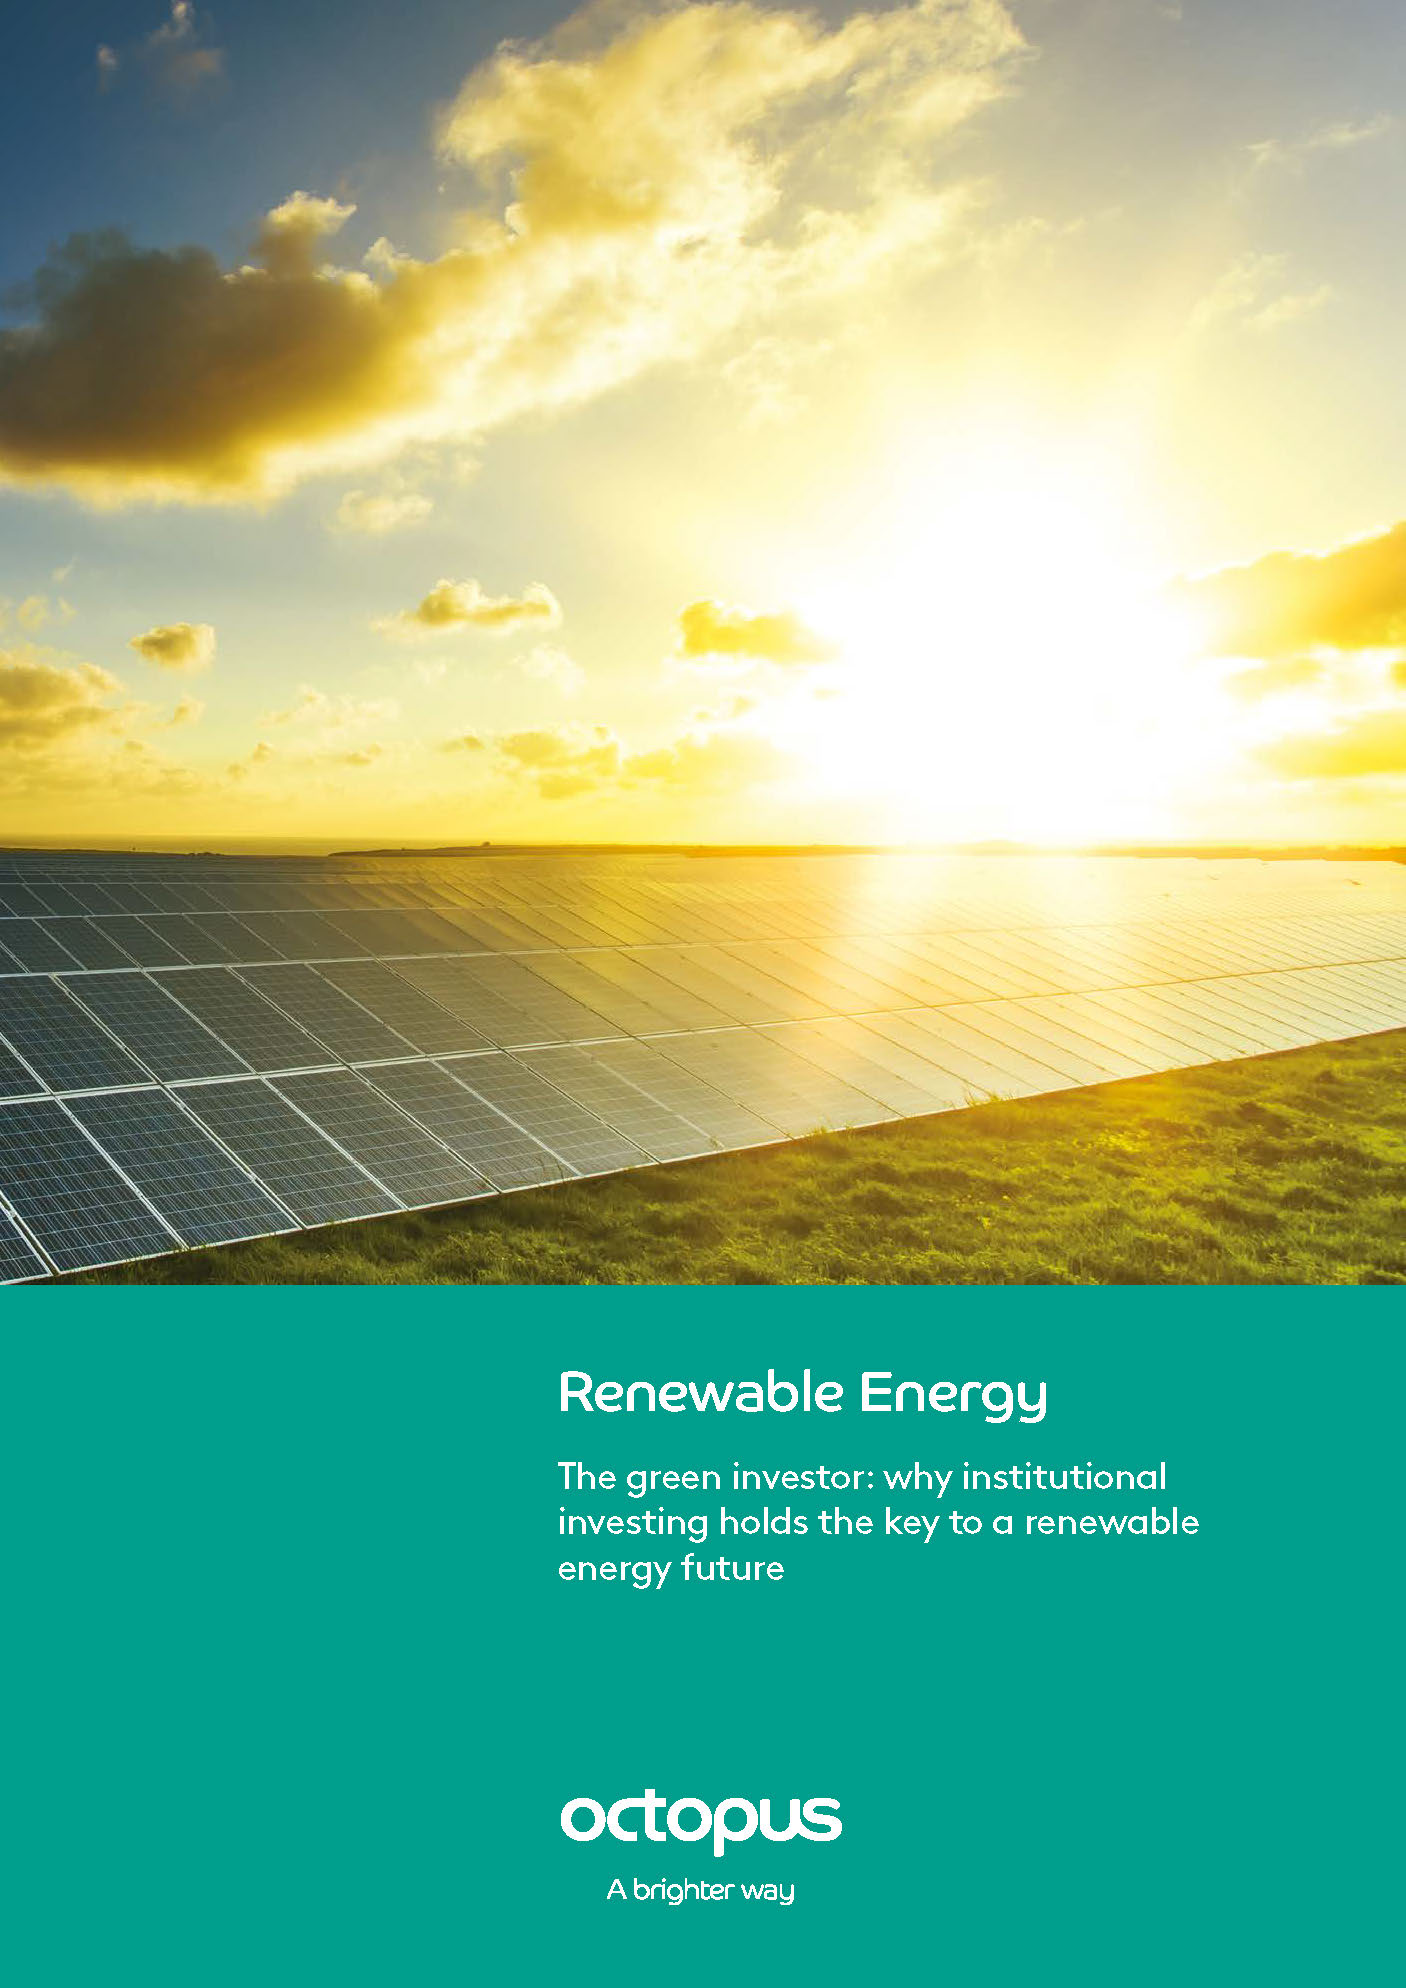 Pages from OE003-Octopus-Renewable-Energy-Investment-Report-Final-web